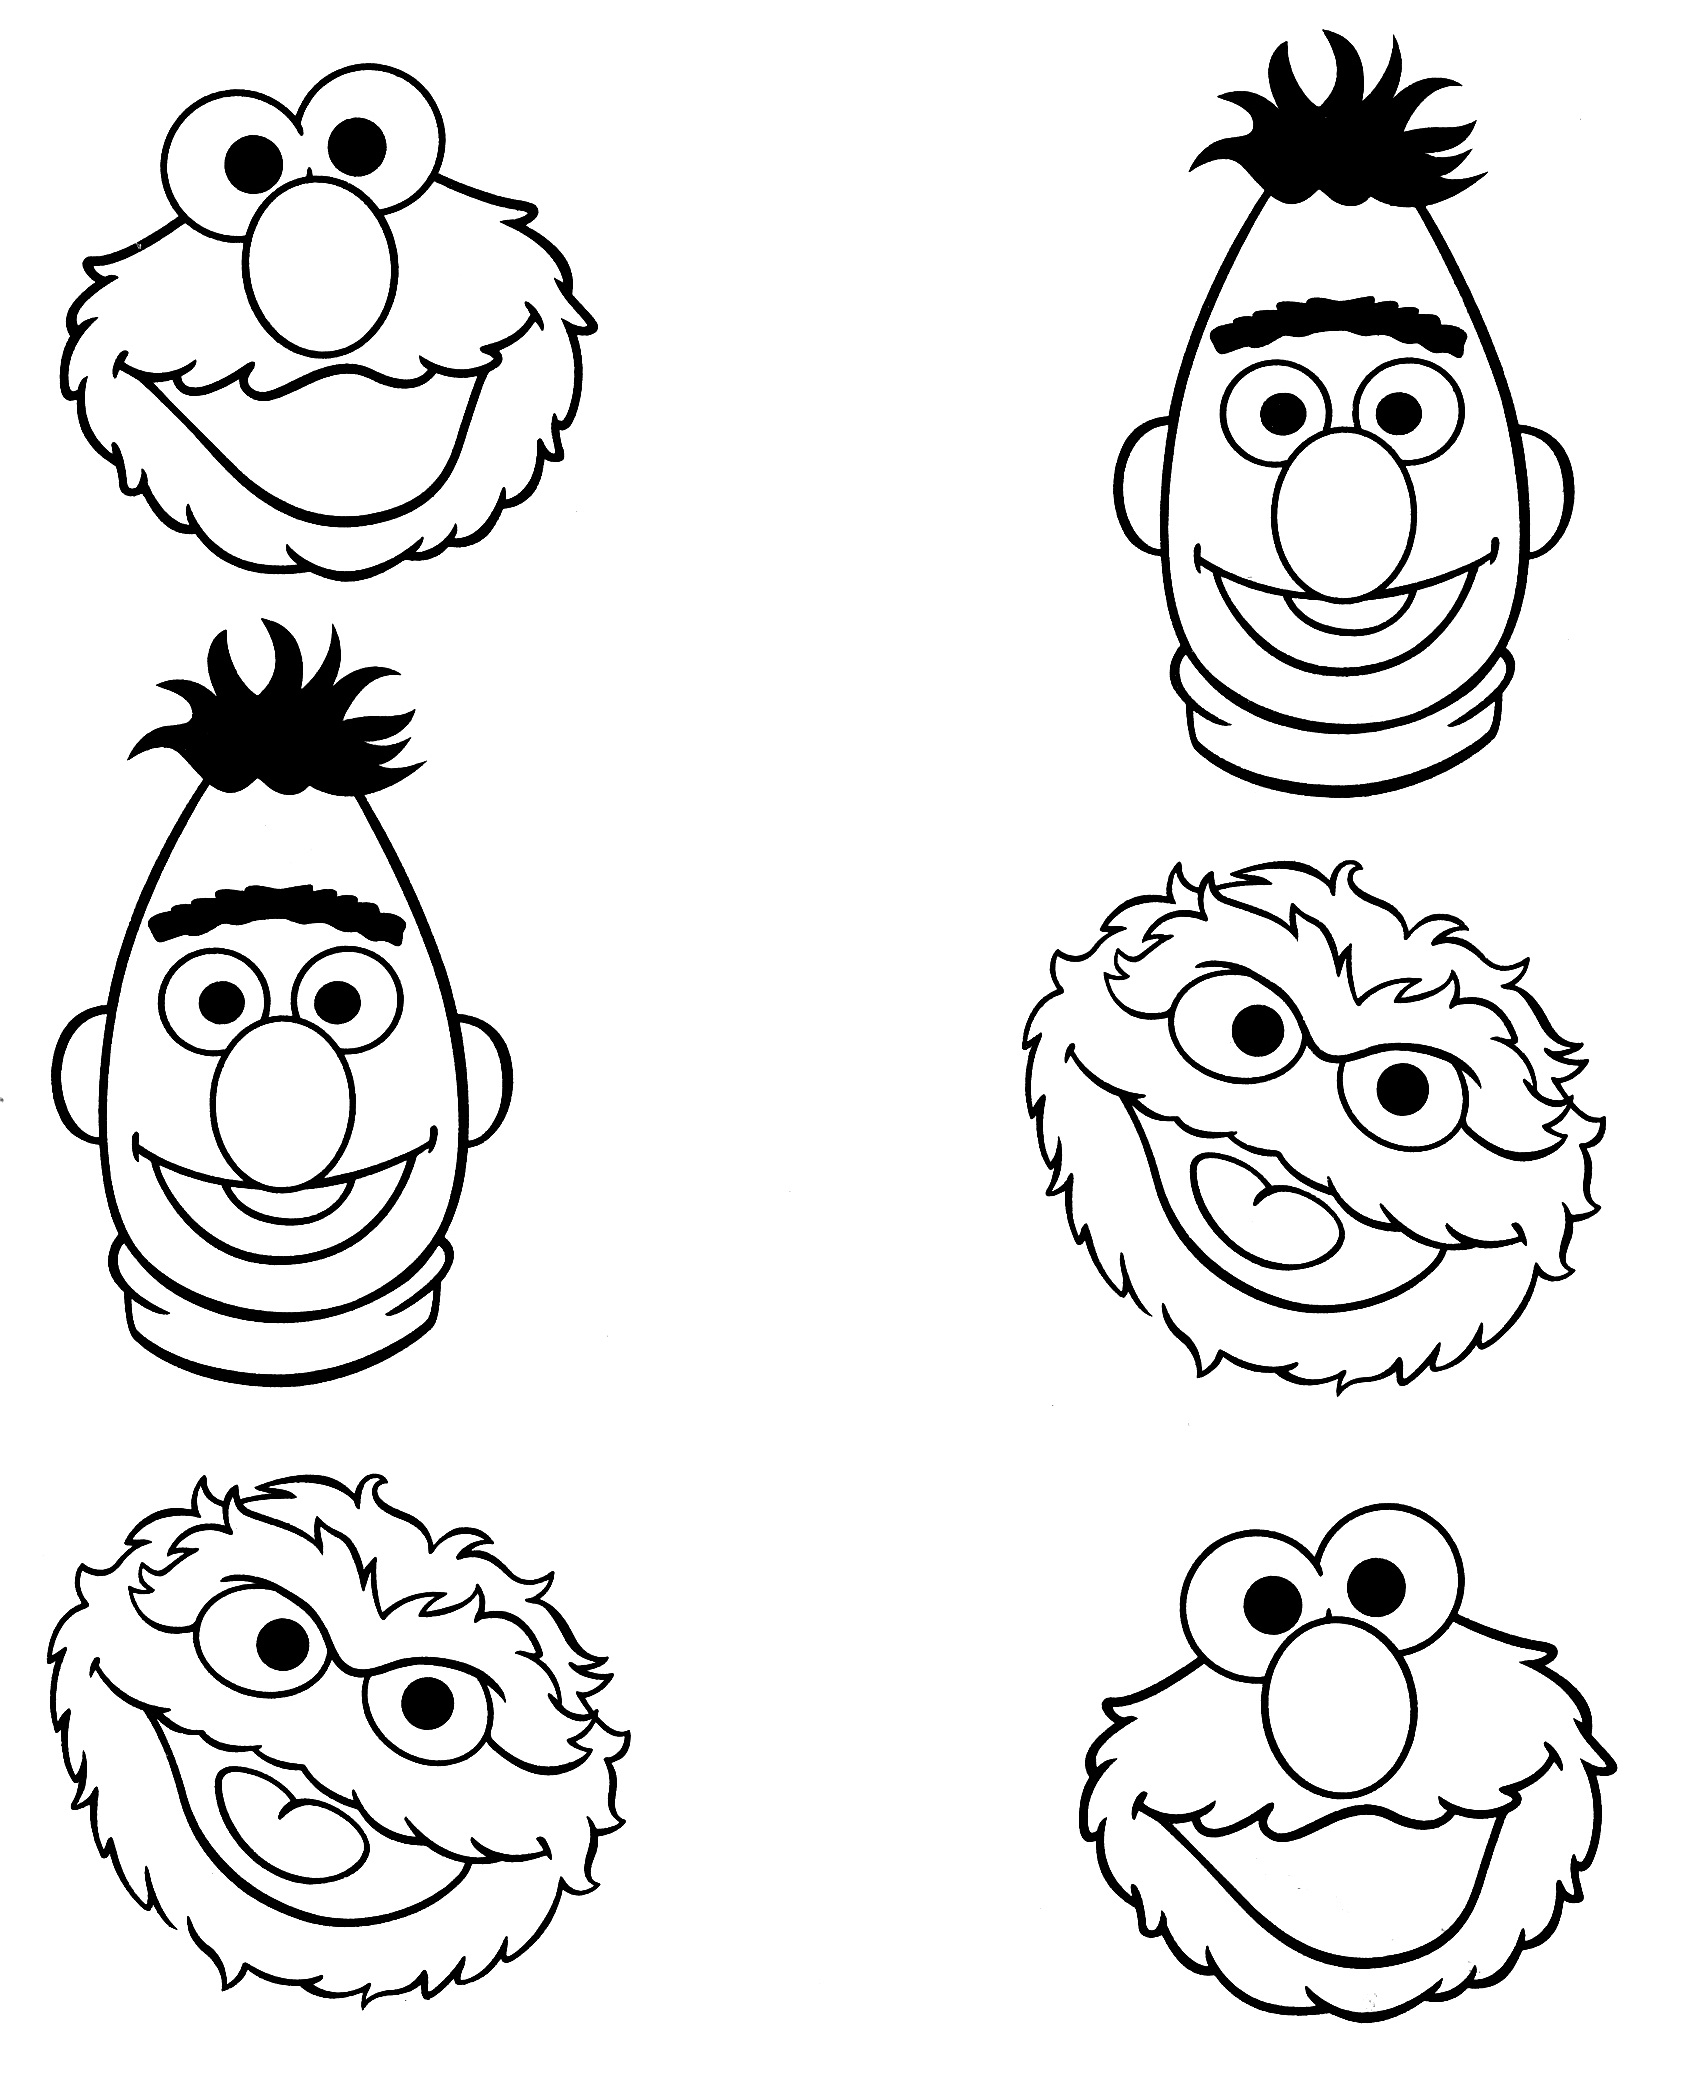 character coloring pages disney cartoon characters coloring pages for kids character coloring pages